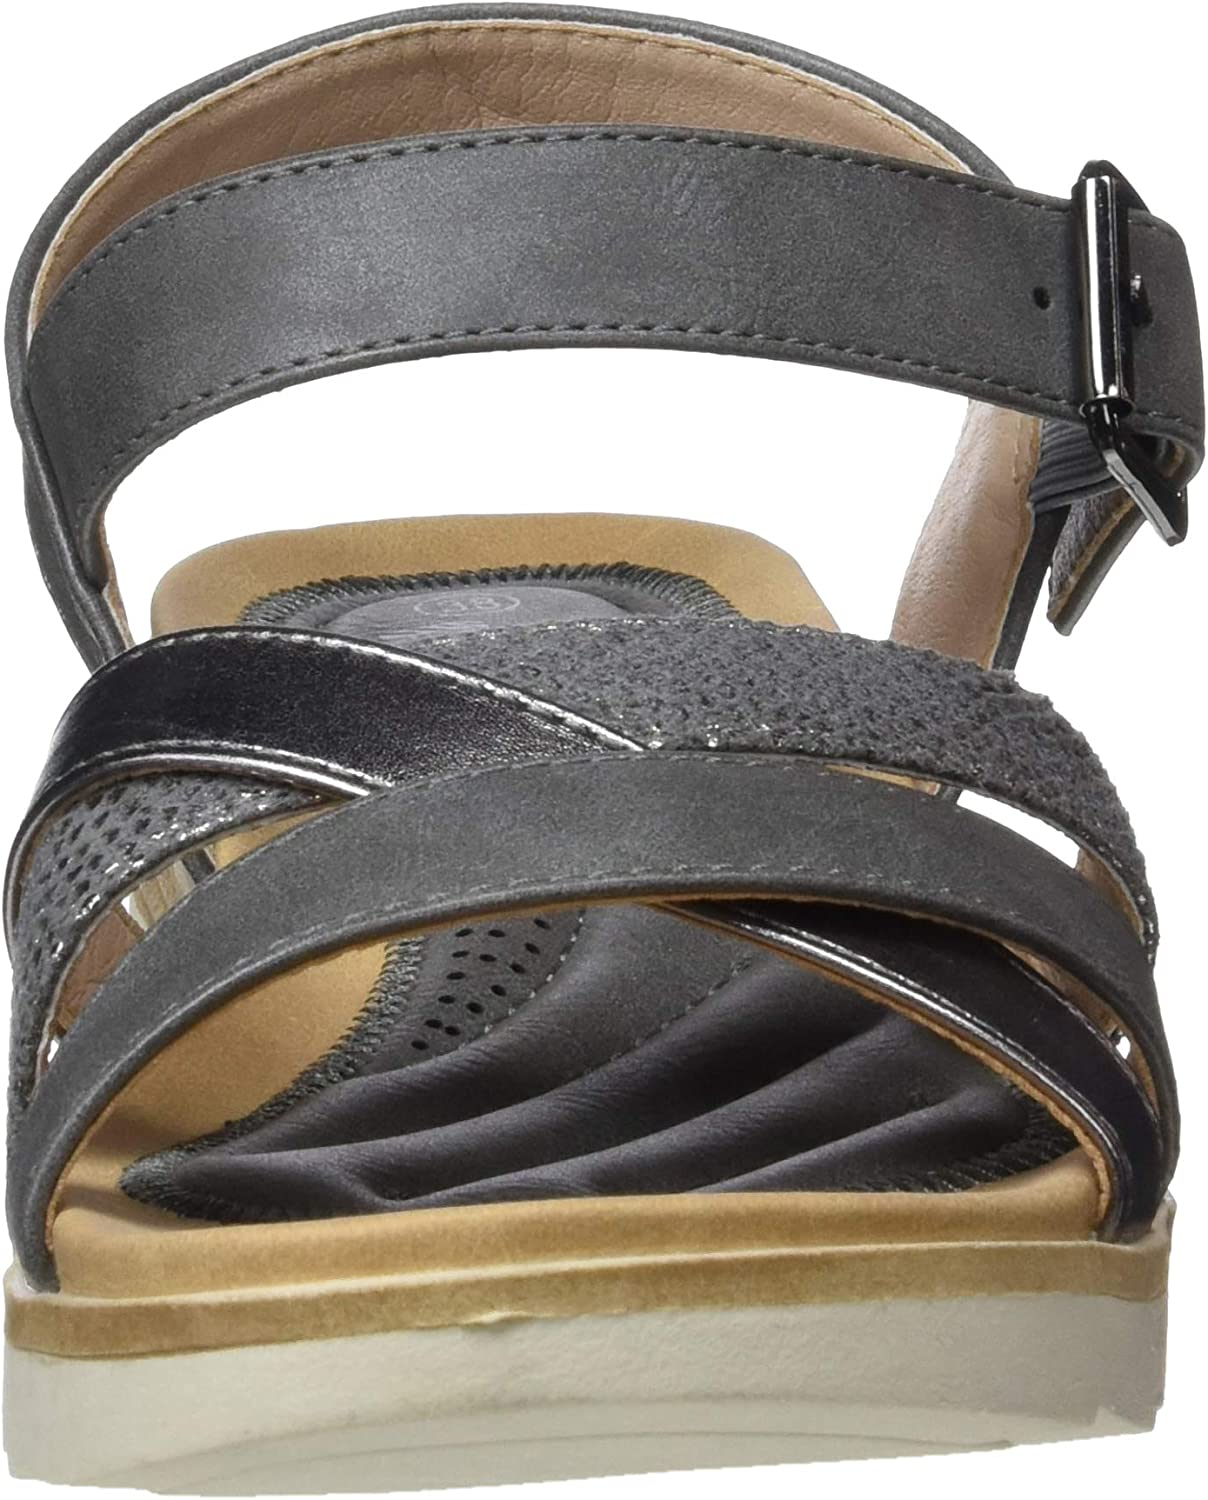 New Womens XTI Tan 48141 Synthetic Sandals Flats Buckle Straps